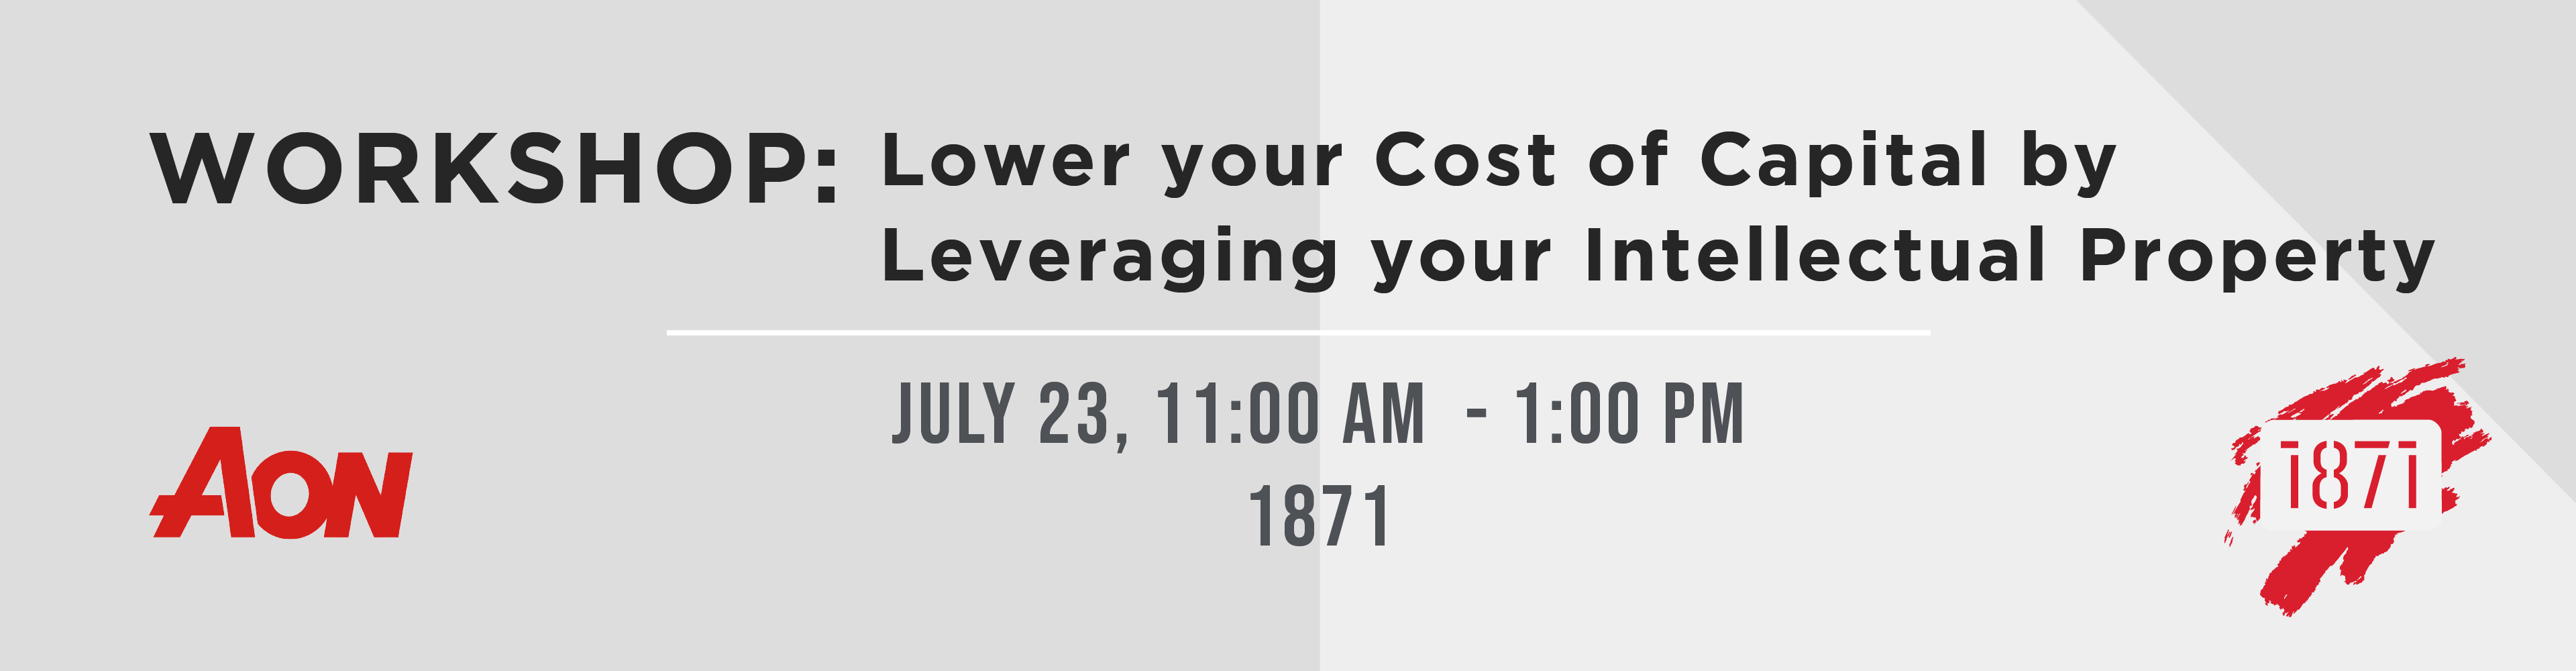 Learn to Lower Your Cost of Capital by Leveraging IP